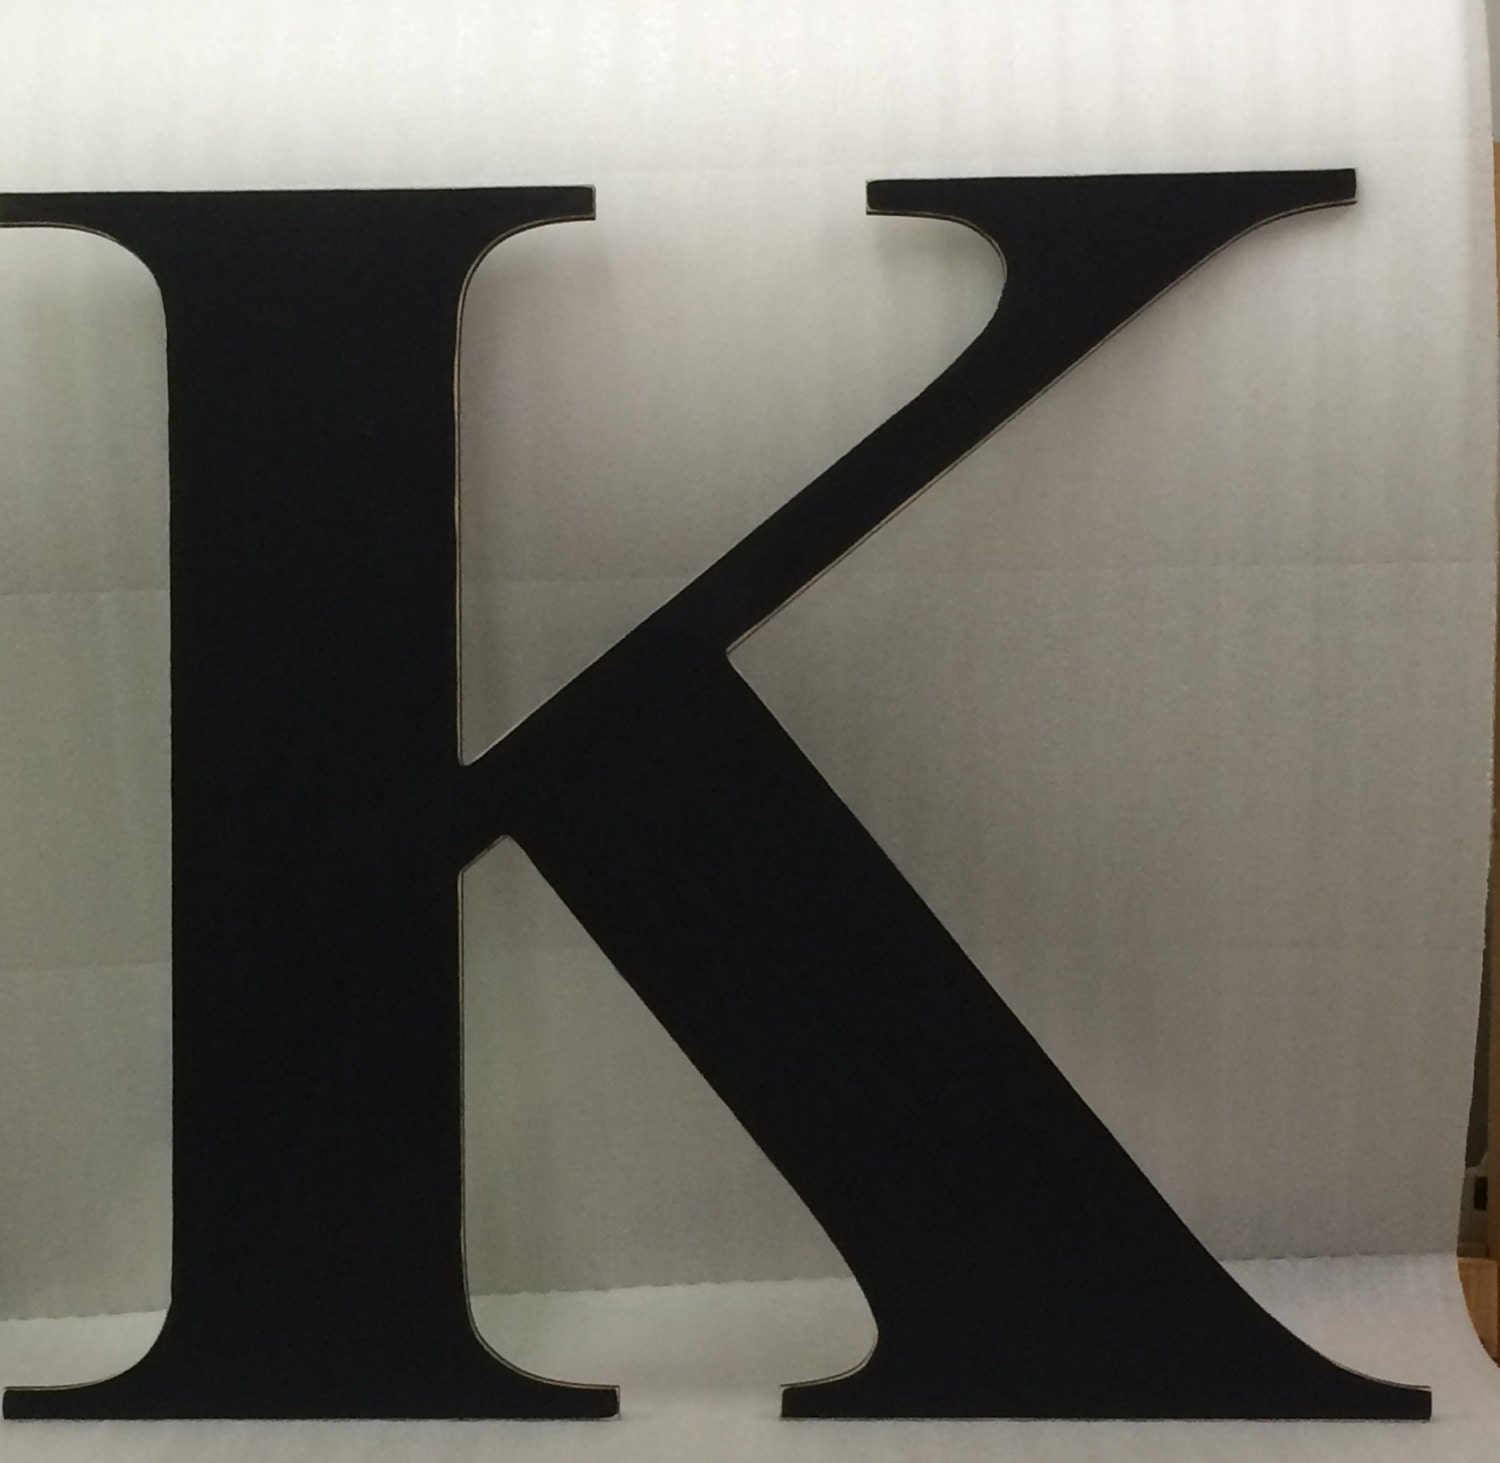 big wooden letter k capital 36 wedding guest book With big wooden letter k